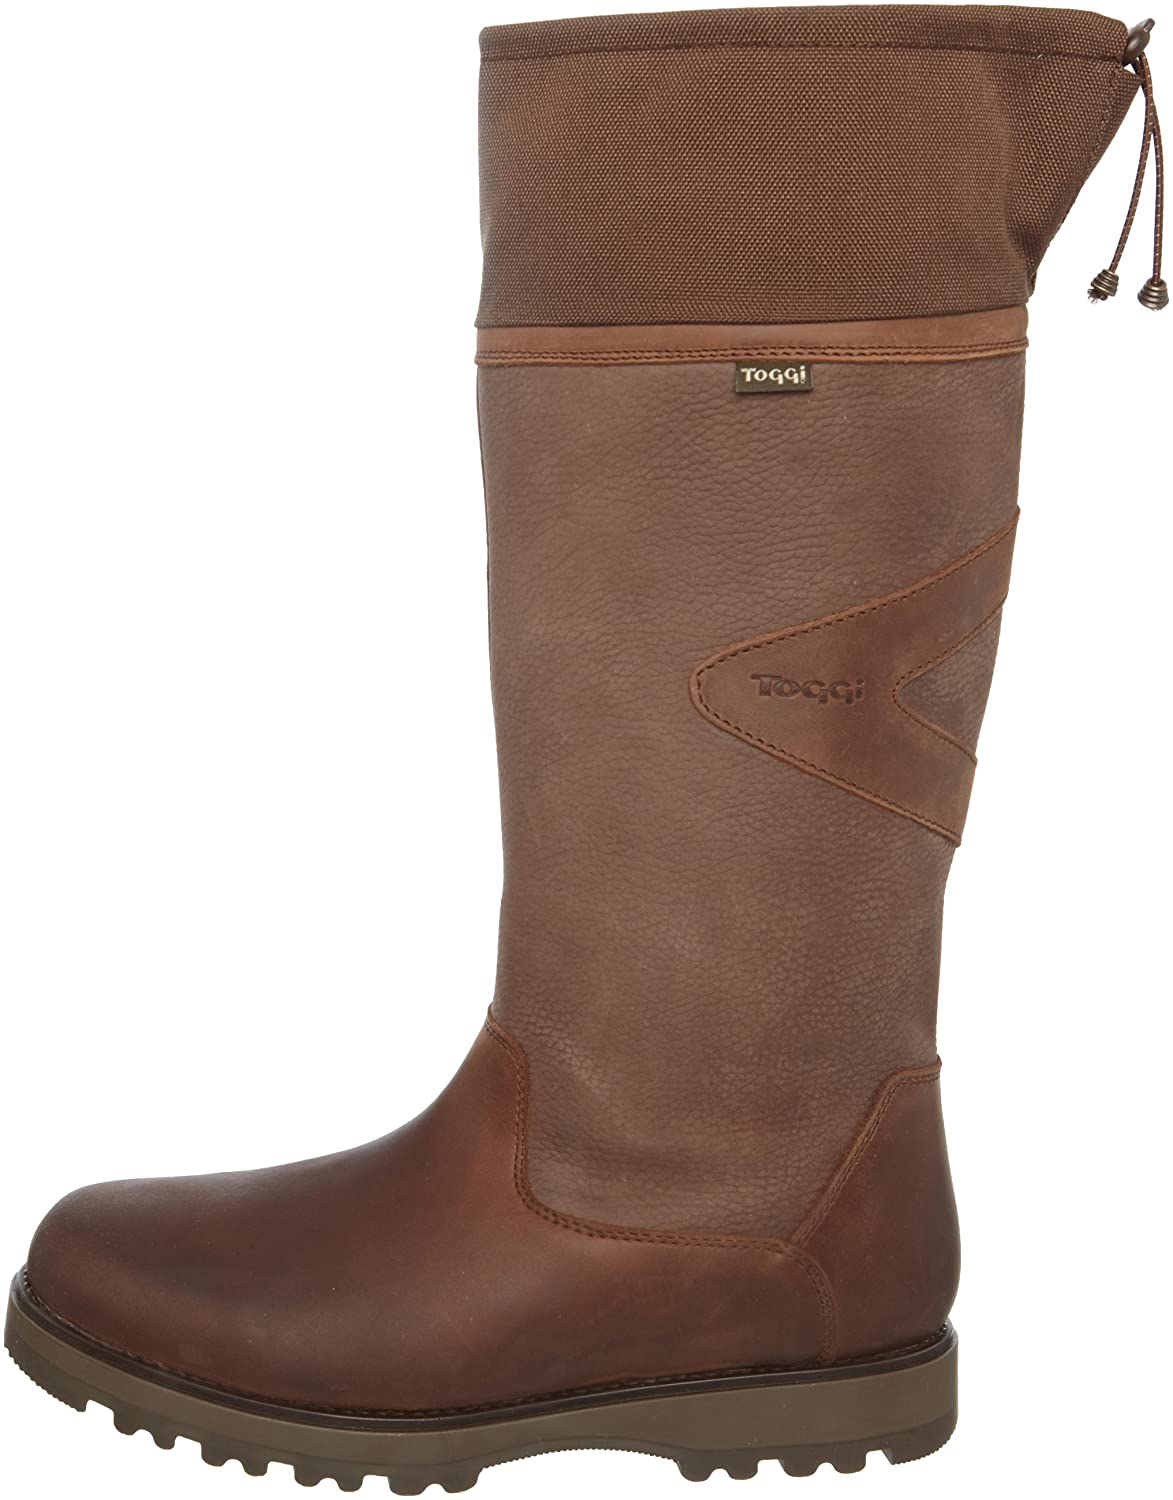 TOGGI Columbus Unisex-Adults' Wellington Boot- Dark Copper Cheap Visit New Deals Looking For Sale Online Cheap Sale Real Latest Collections Cheap Online hpziC1RnY